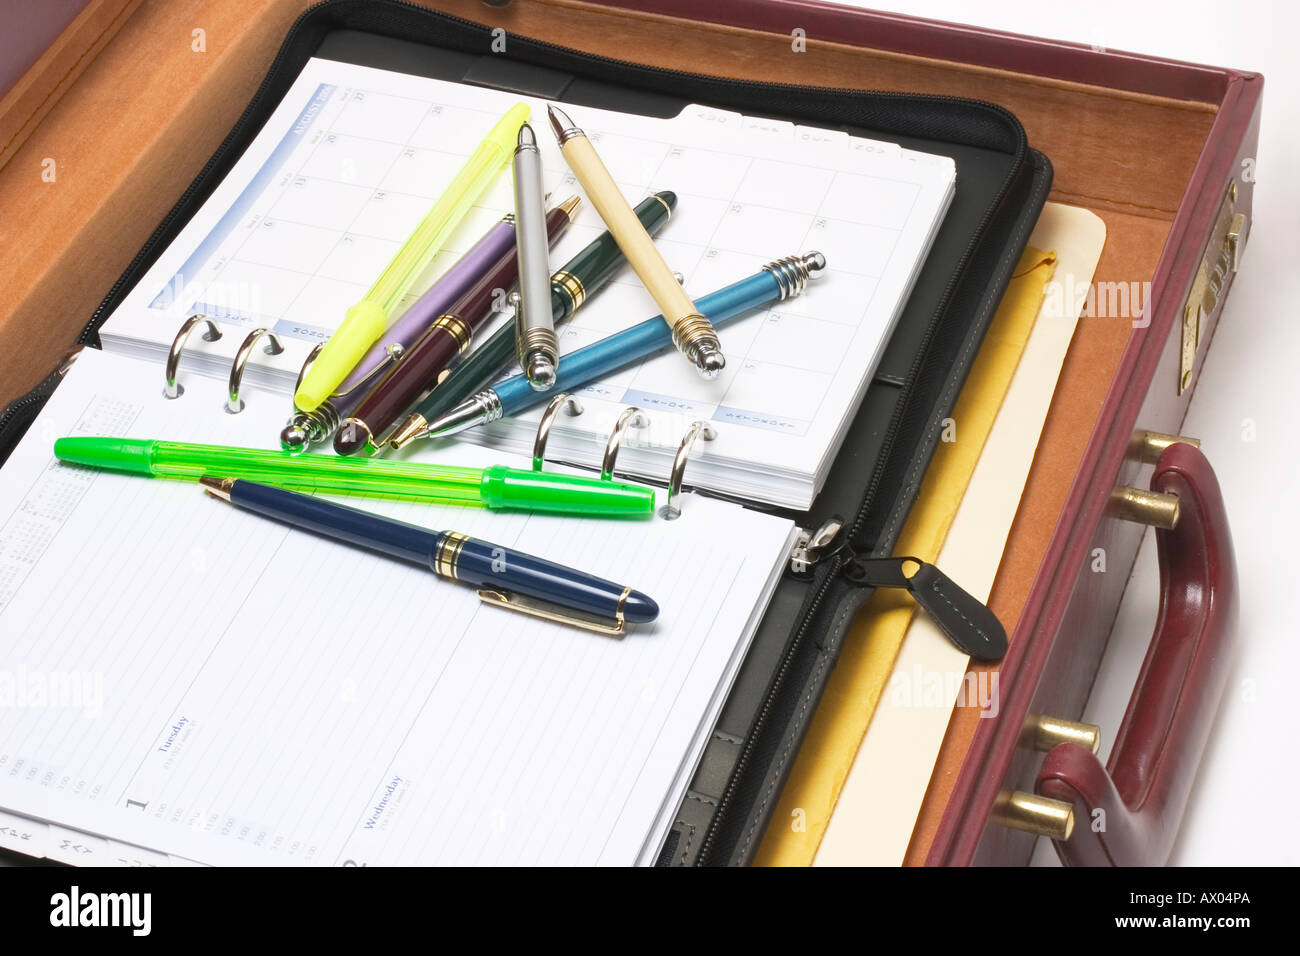 Pens and Organiser in Briefcase - Stock Image